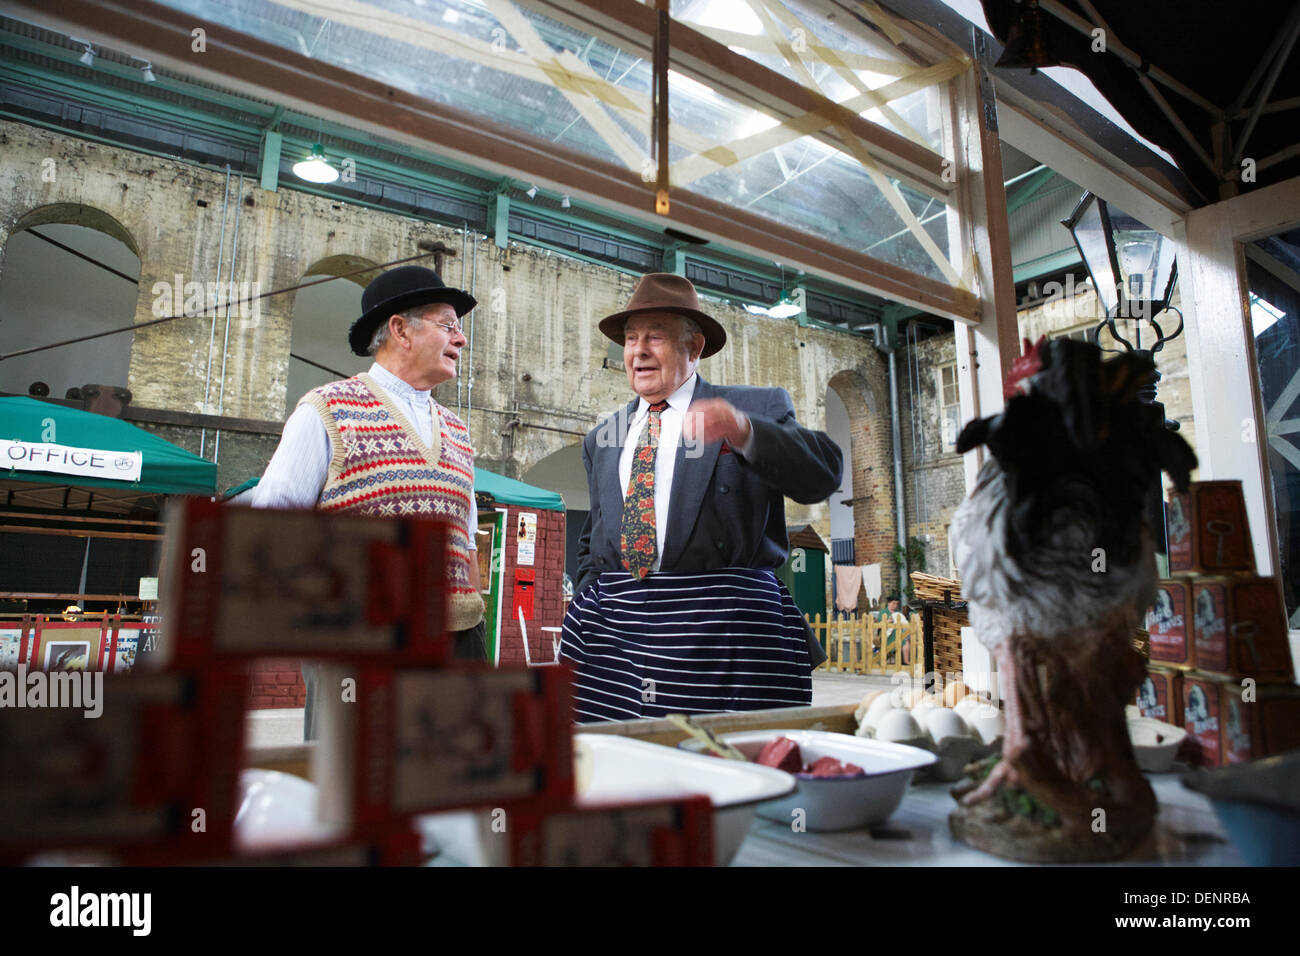 Chatham, UK. 21st Sep, 2013. Salute to the 40's - Britain's 1940's Home Front Event at The Historic Dockyard Chatham. Market traders talking. - Stock Image